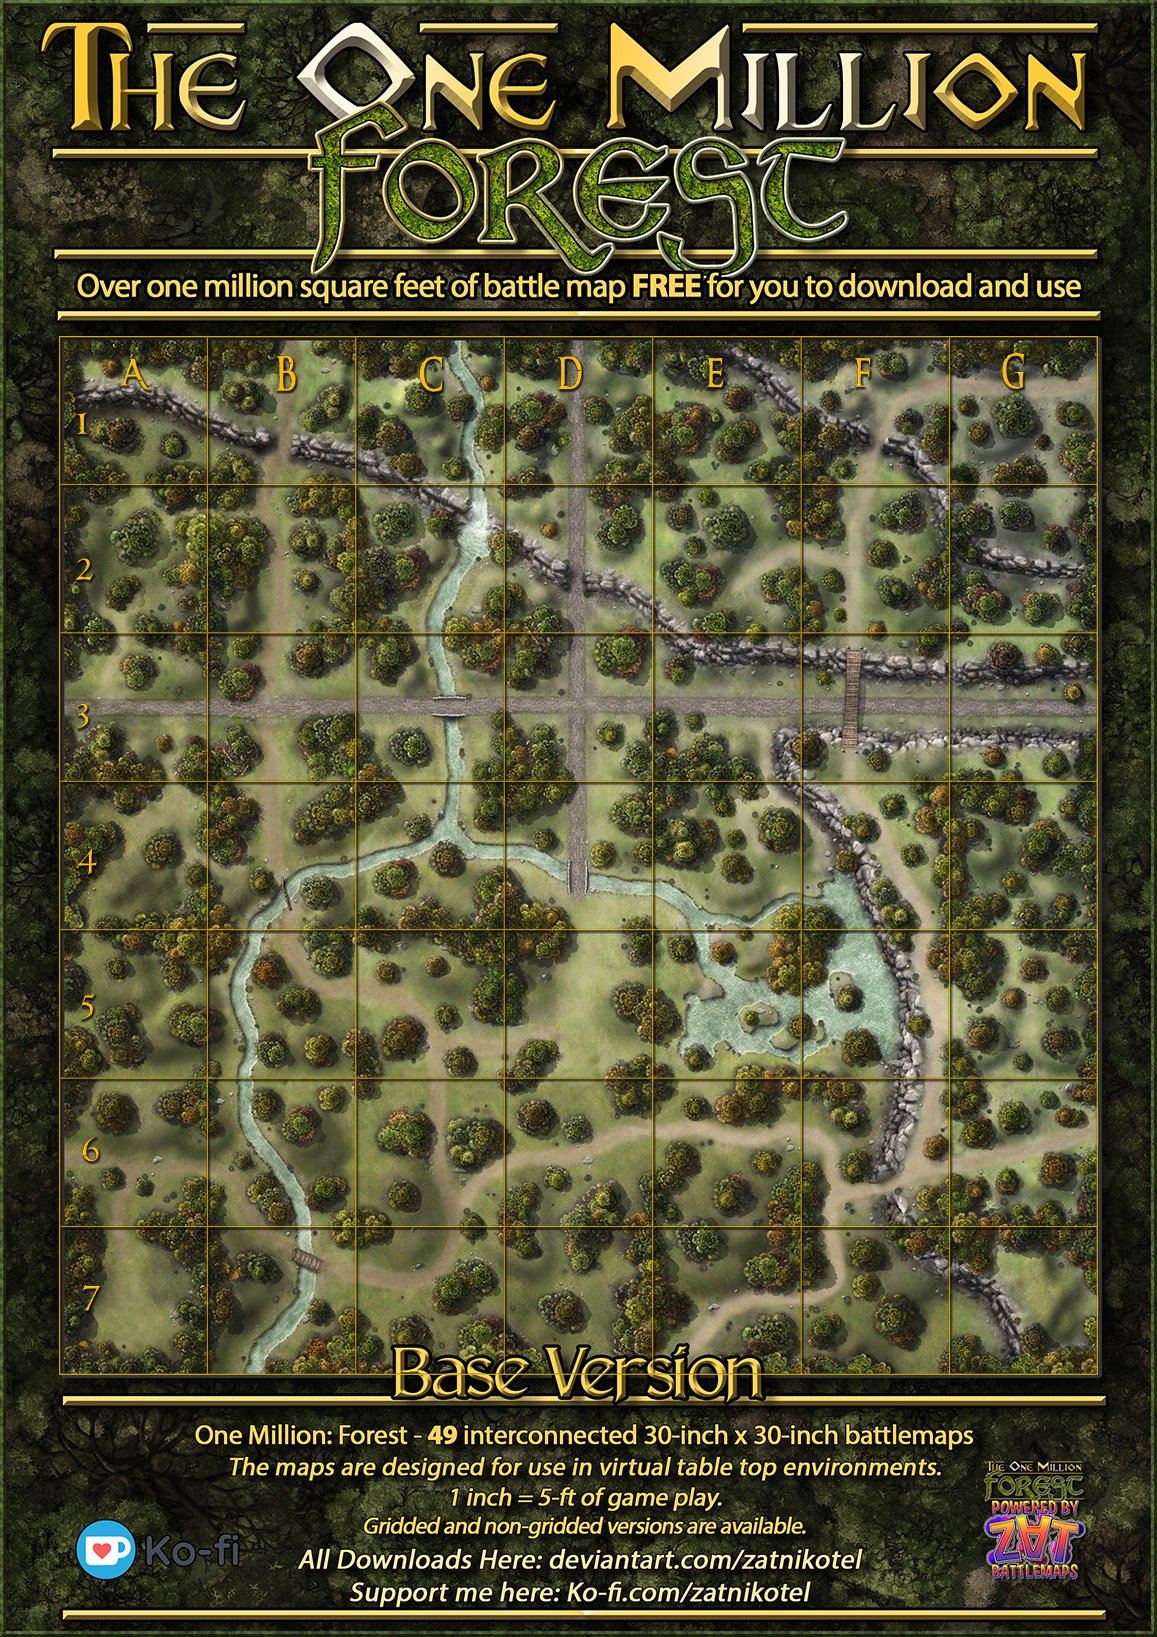 Forest Dnd Map : forest, Million, Square-Feet, Battle, Souls